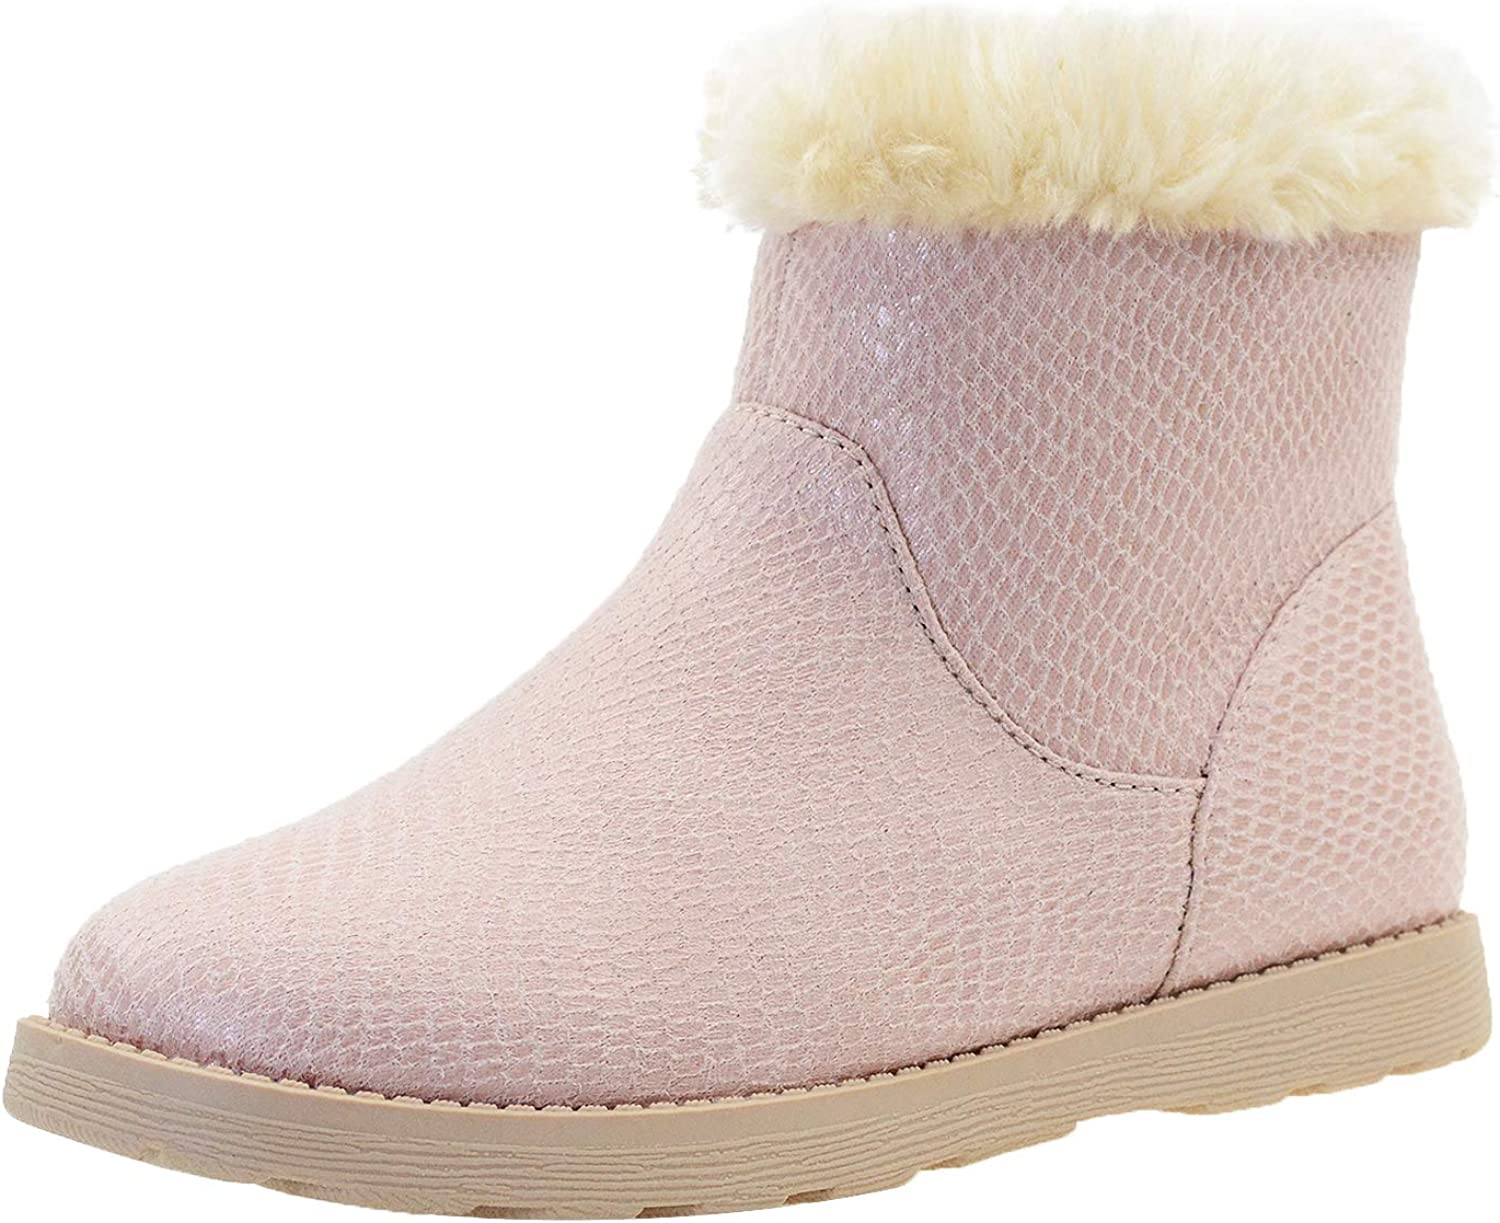 Choice LseLom-Girls-Boots-Warm-Ankle-Snow-Boots Kids Soft Outlet sale feature Plush Lining